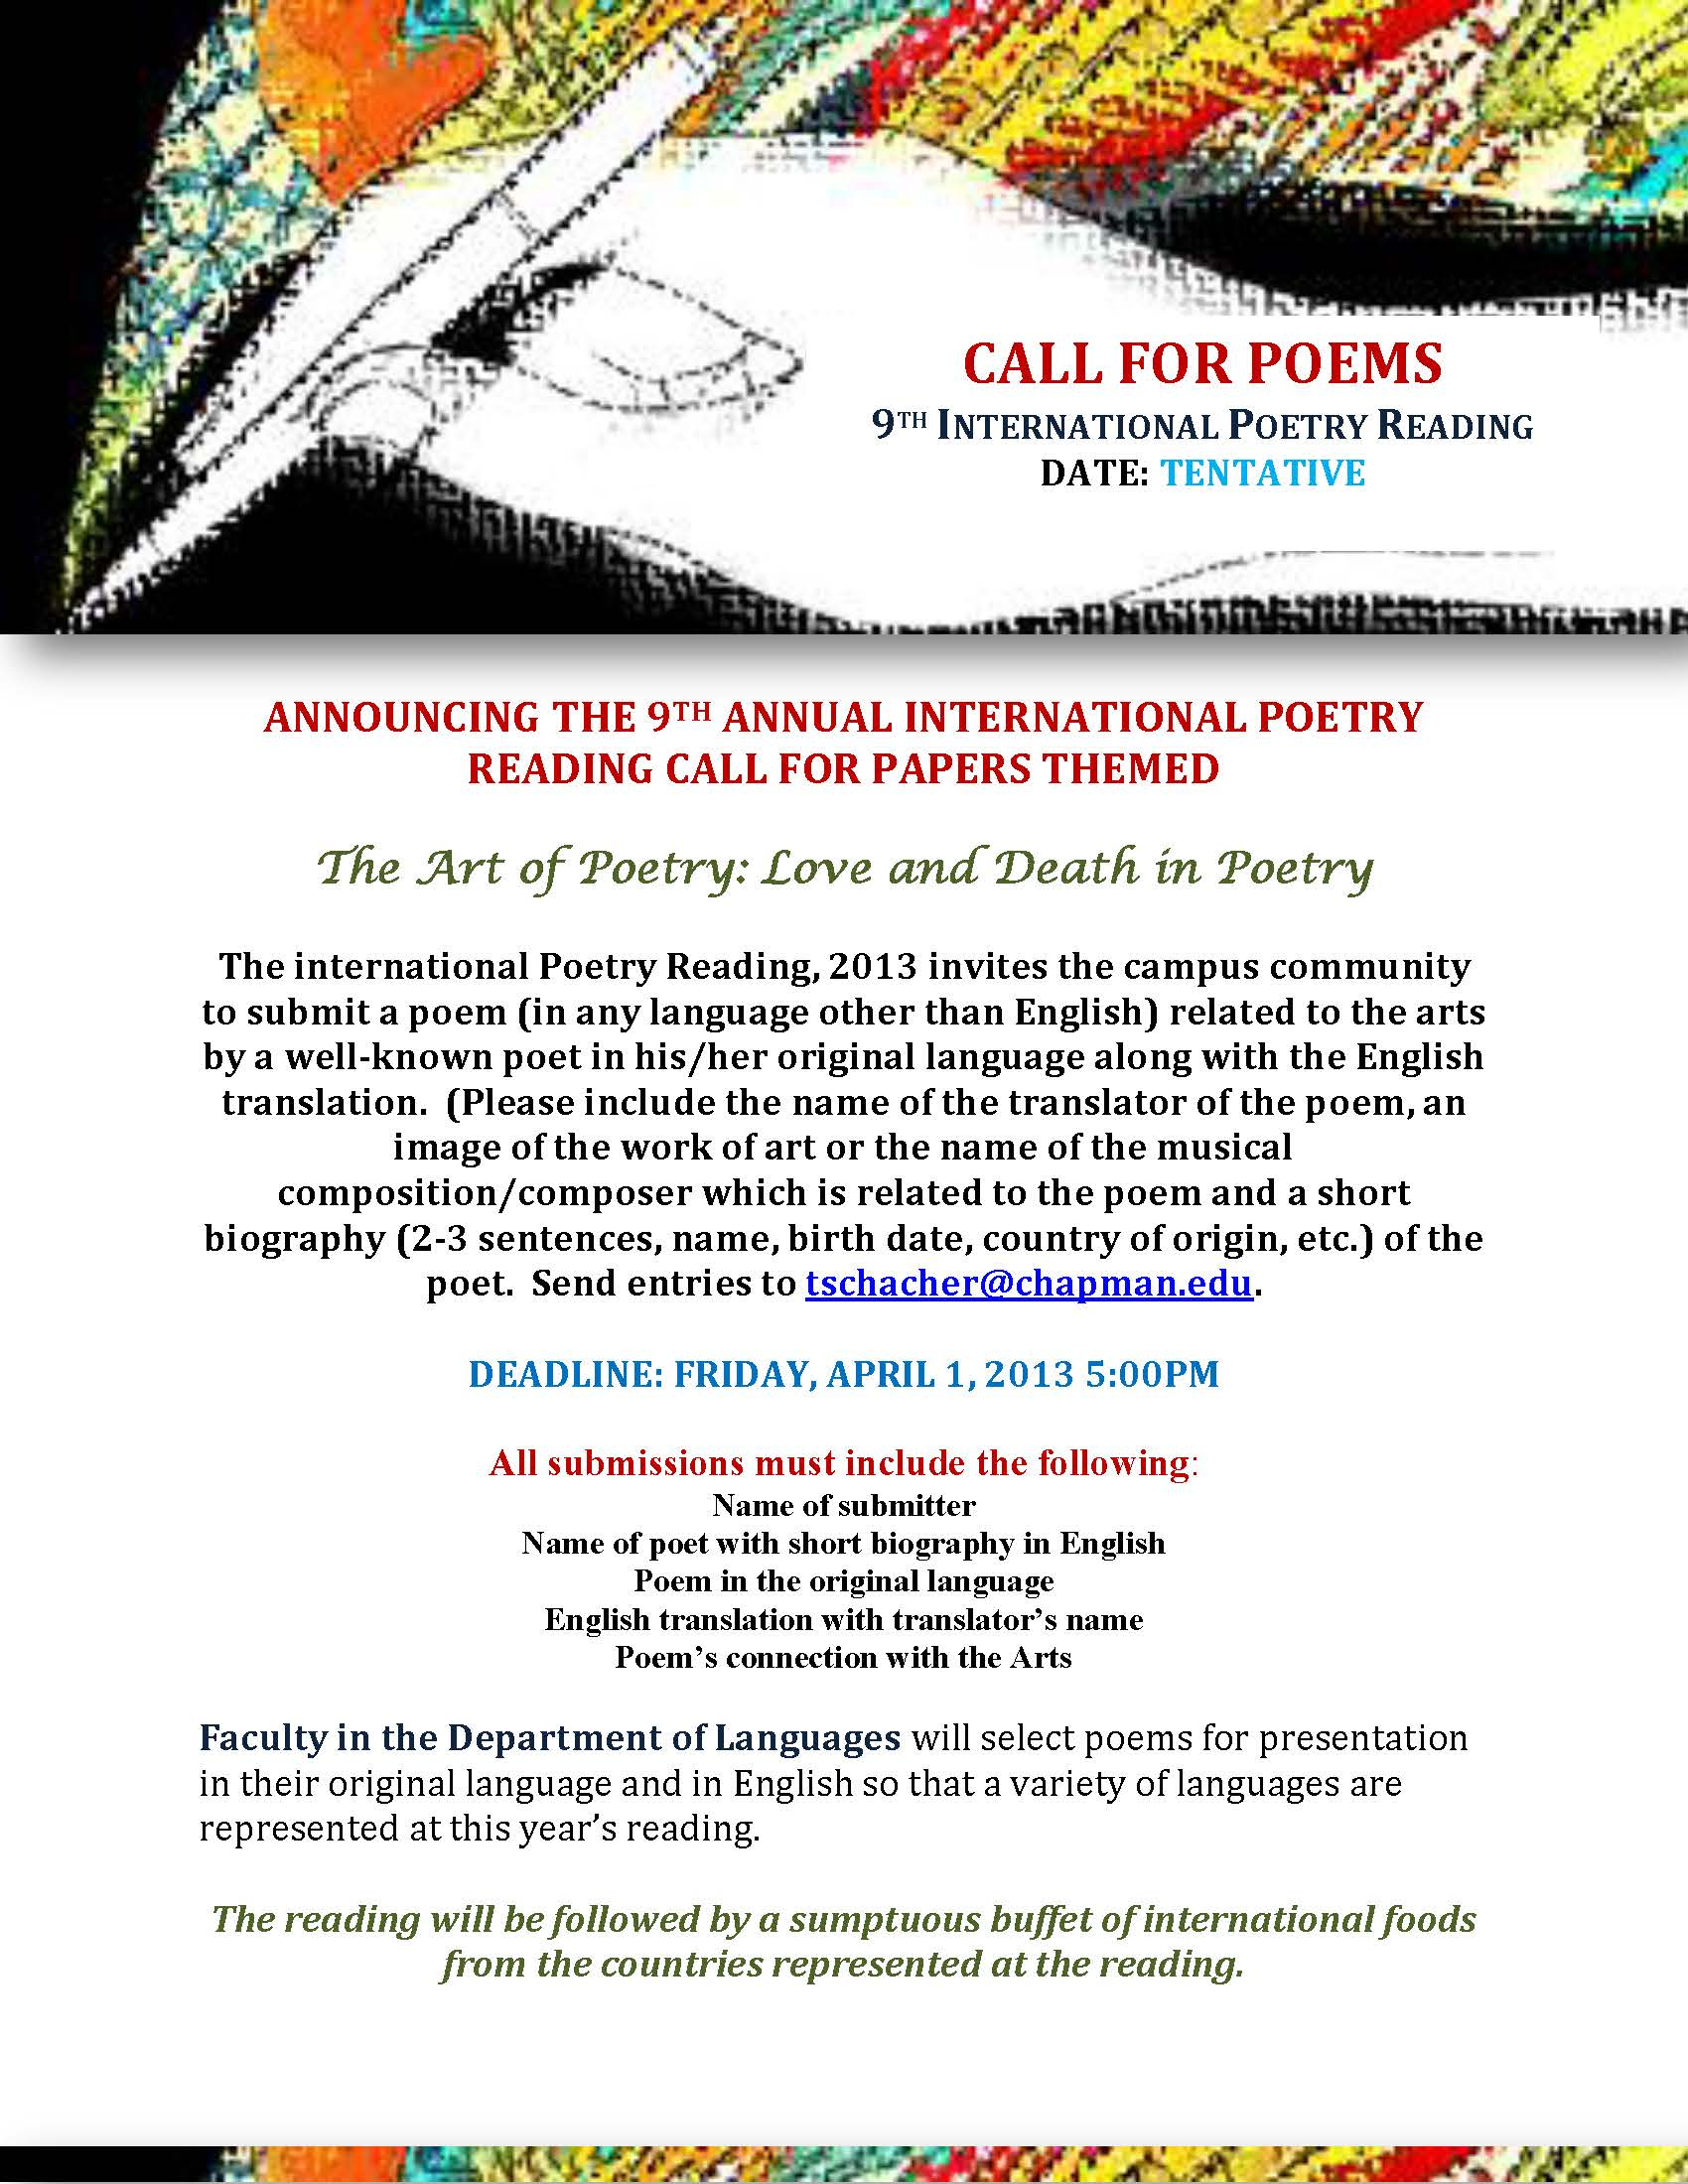 Announcing the 9th Annual International Poetry Reading call for